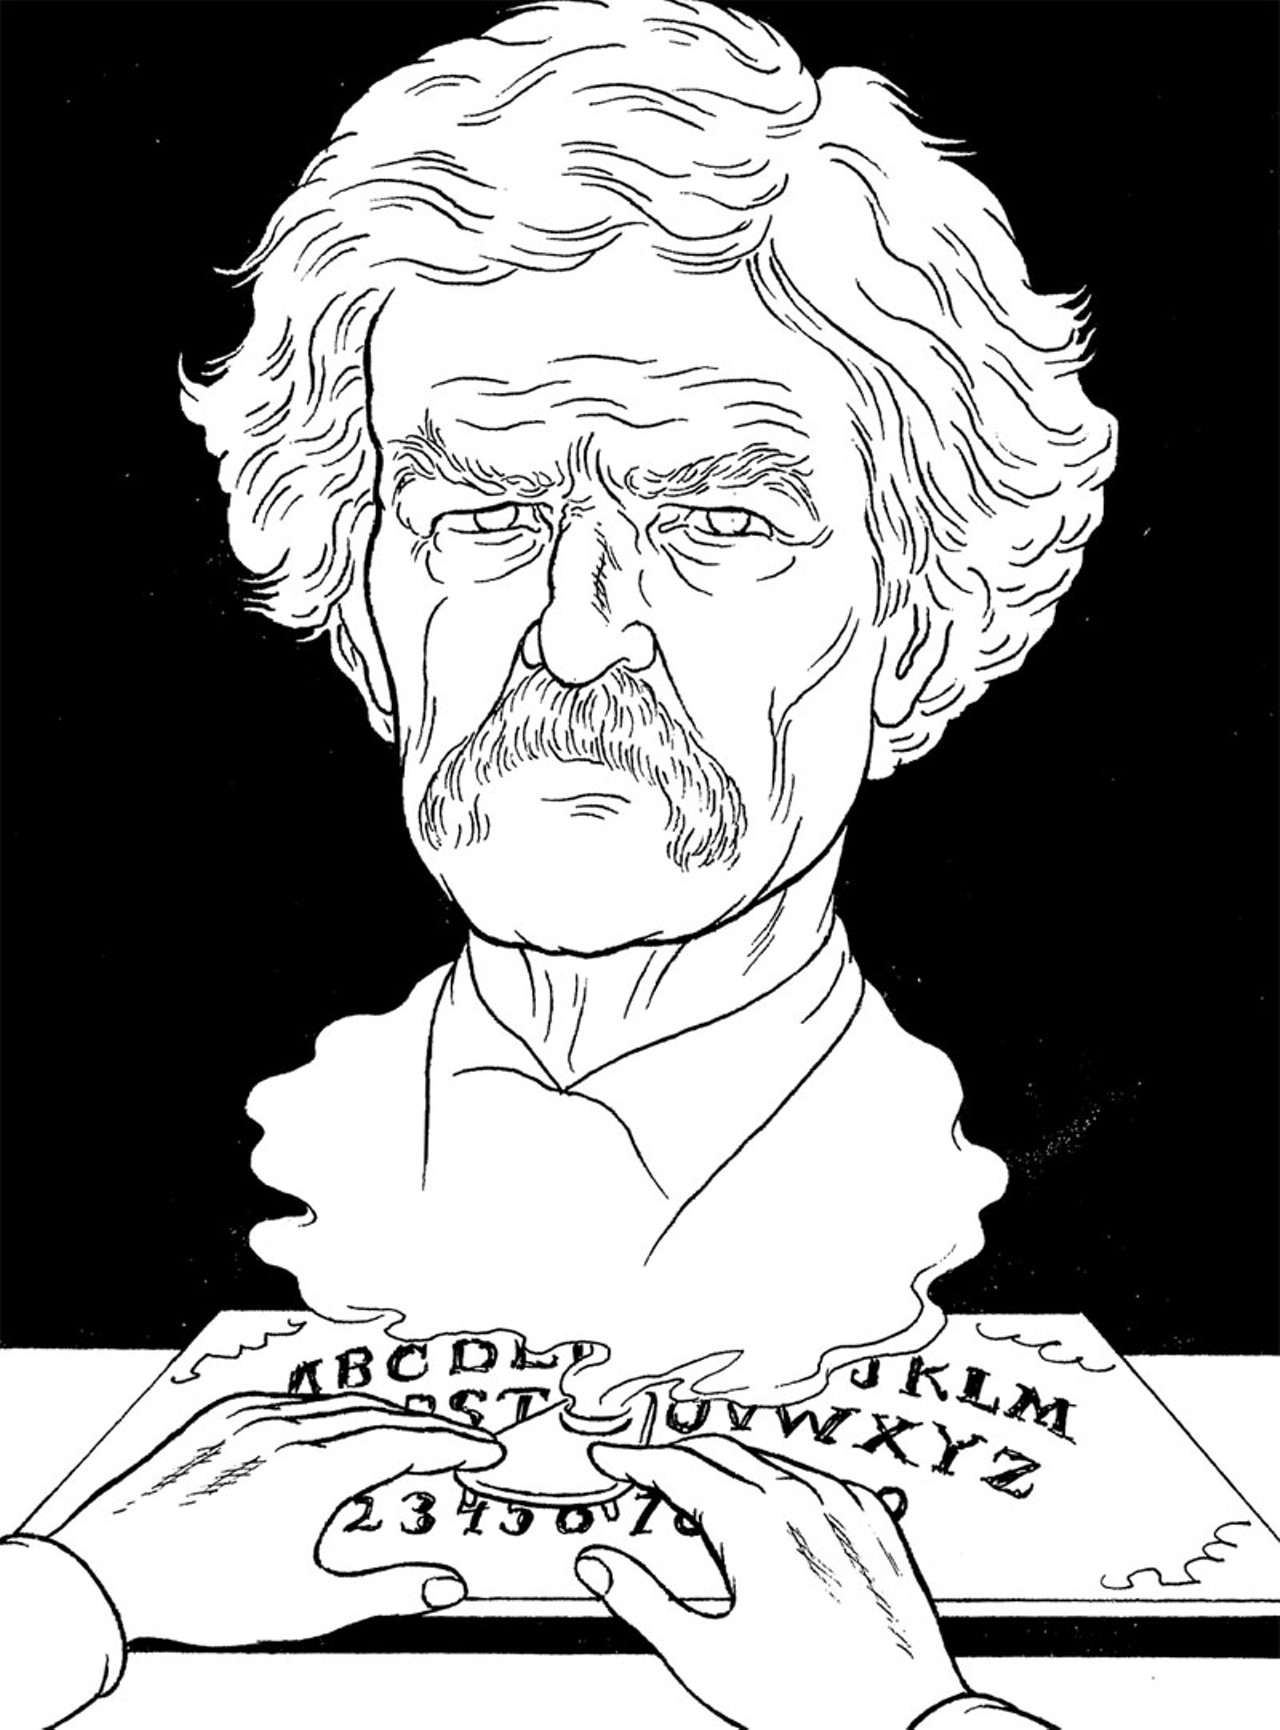 the ghost story by mark twain